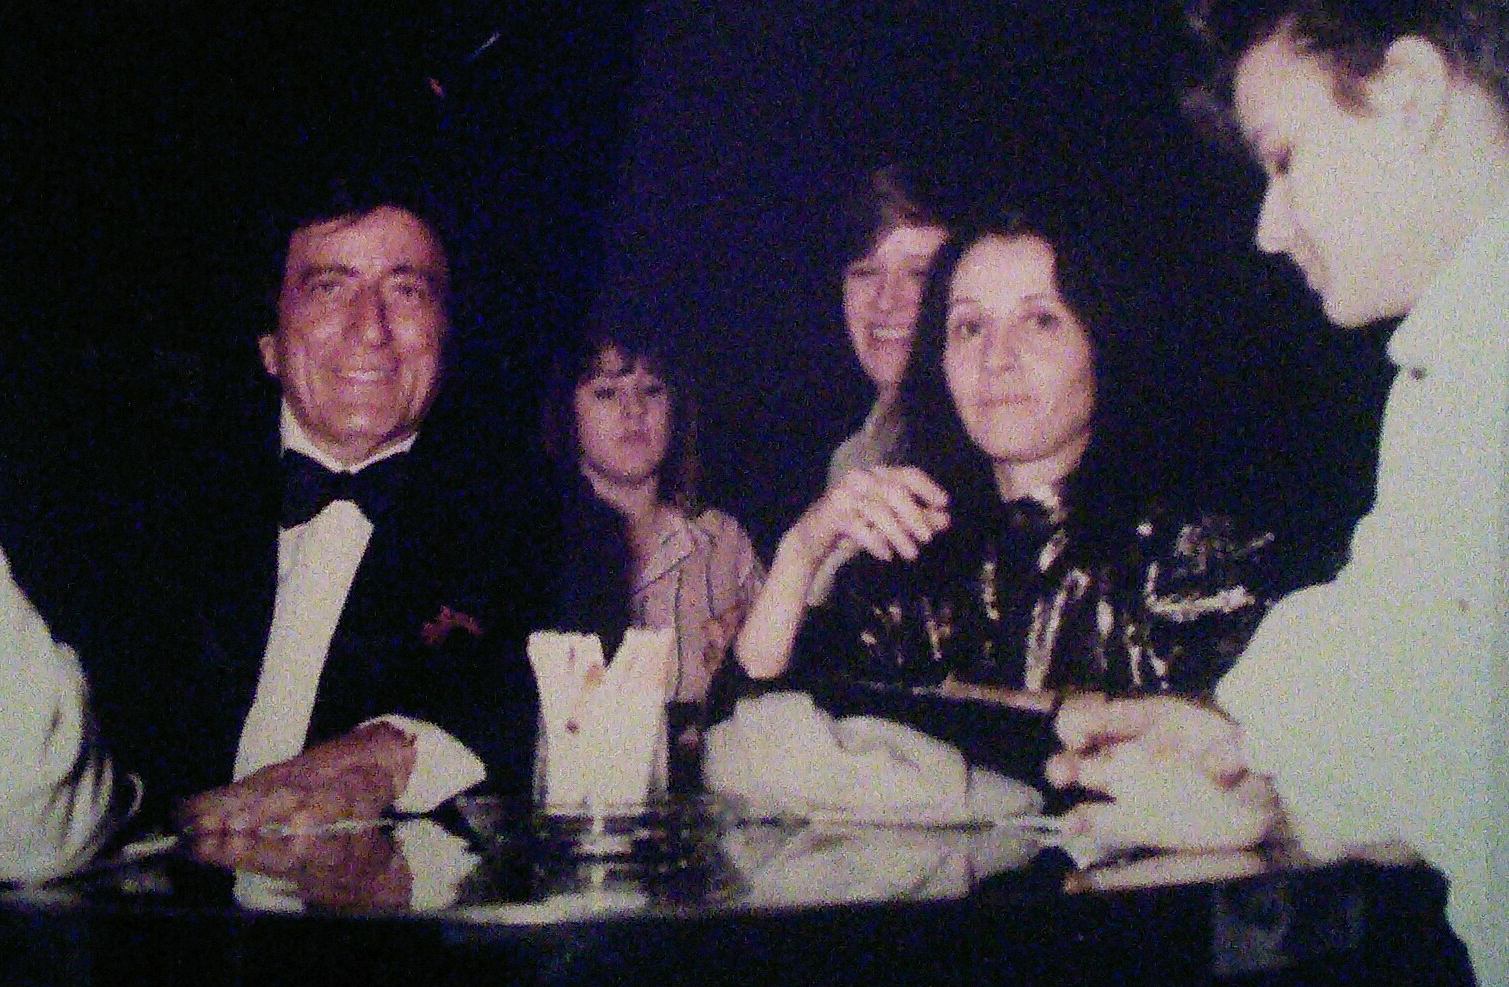 Legendary singer Tony Bennett (left) was one of many famous performers at The Gold Star Sardine Bar, according Bennett's Chicago publicist Debbie Silverman Krolik (second from right). (Courtesy Debbie Silverman Krolik's private collection)